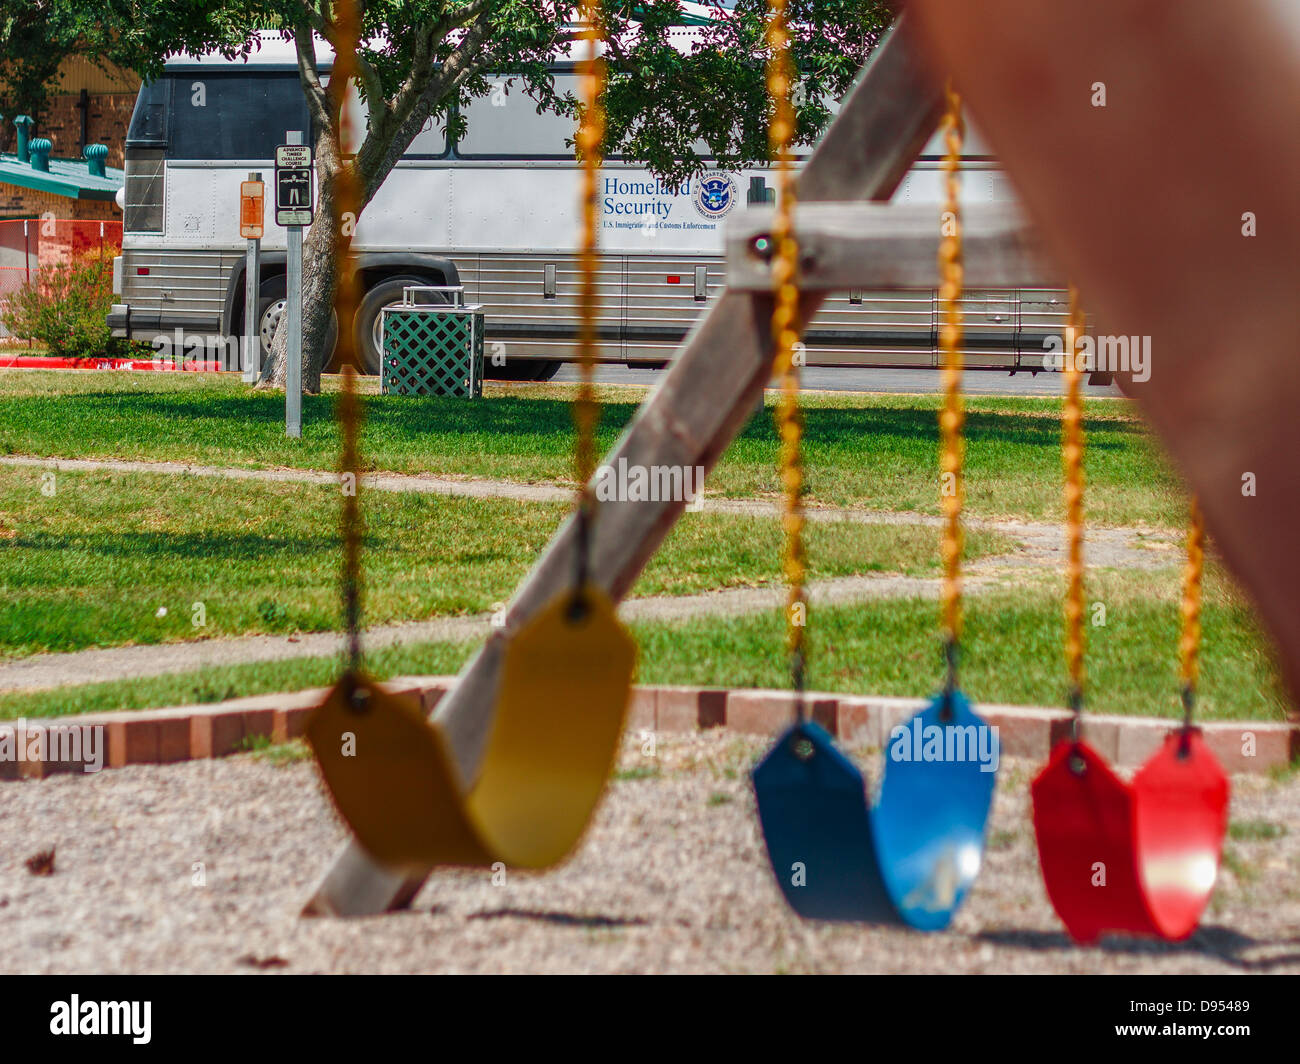 Homeland Security bus parked behind playground - Stock Image